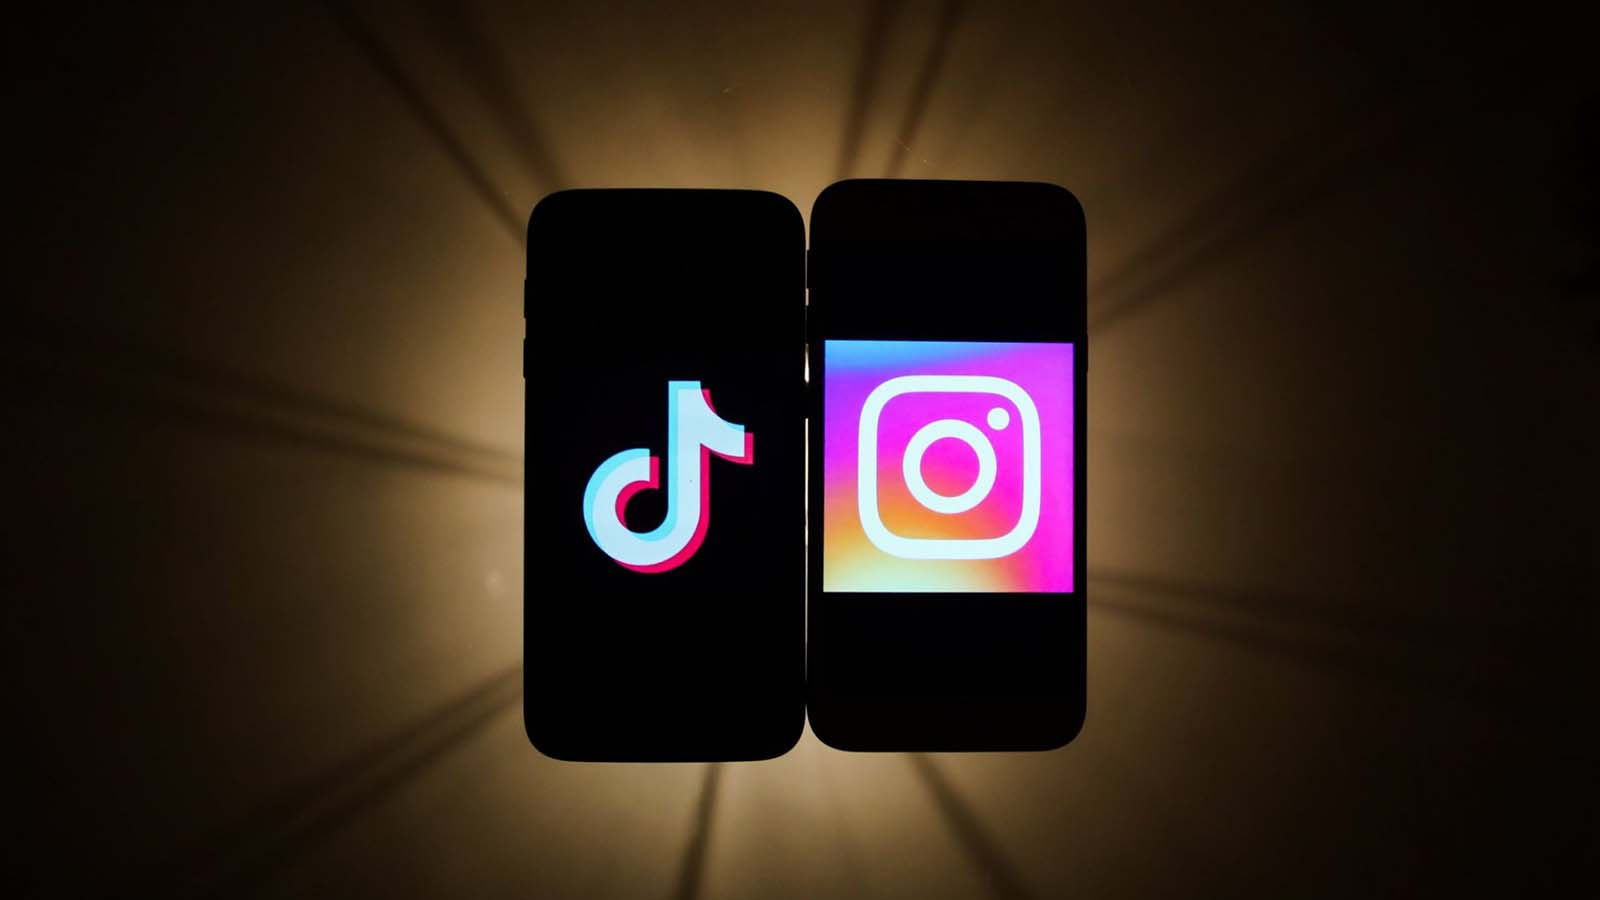 If you're one of the people still traumatized that TikTok is getting shut down, you may want to use your Instagram account to fill the void.